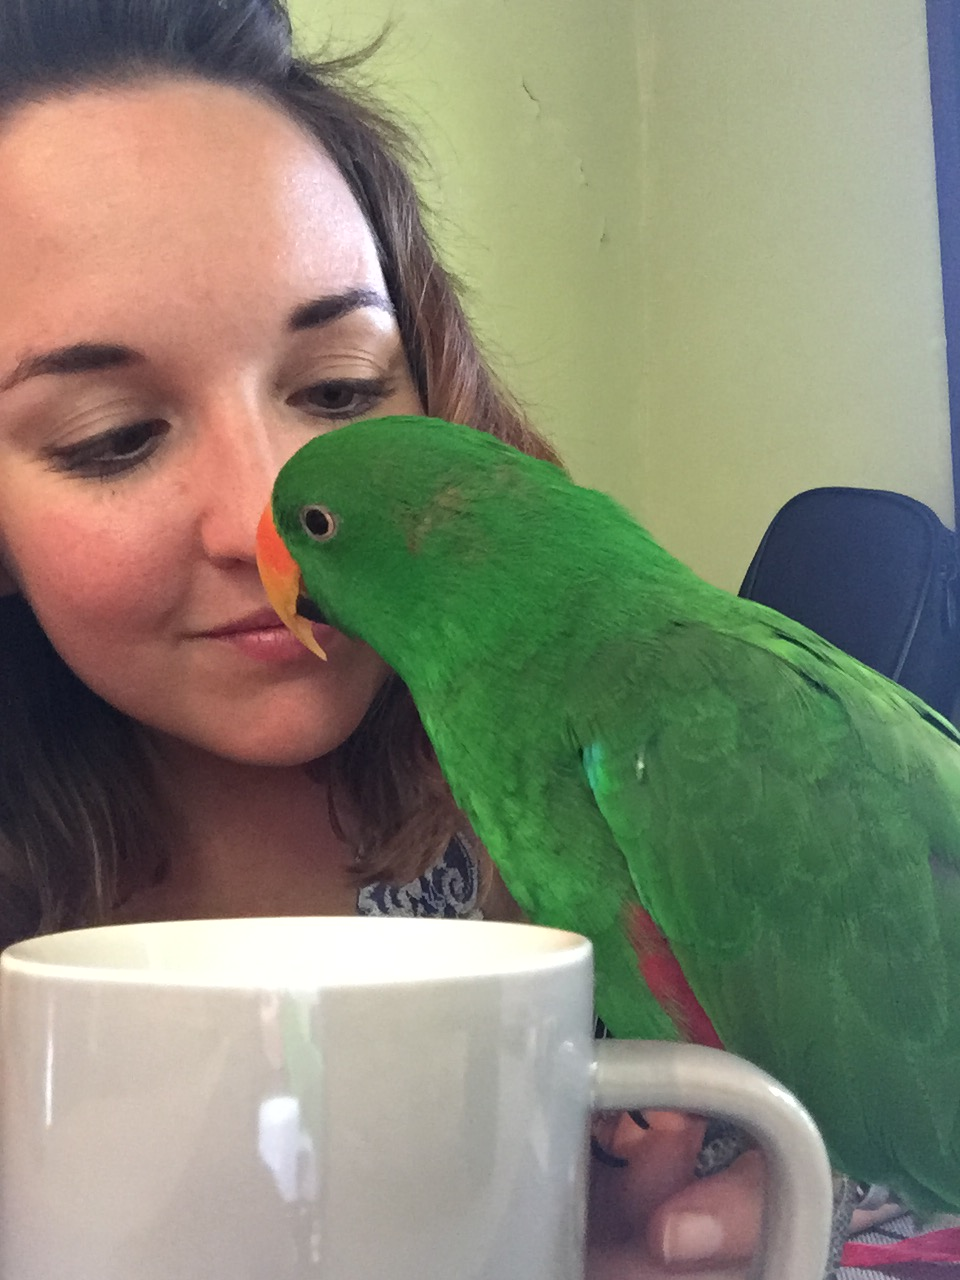 Eclectus Mojo Moults over 5 Years: Improvements in Pictures